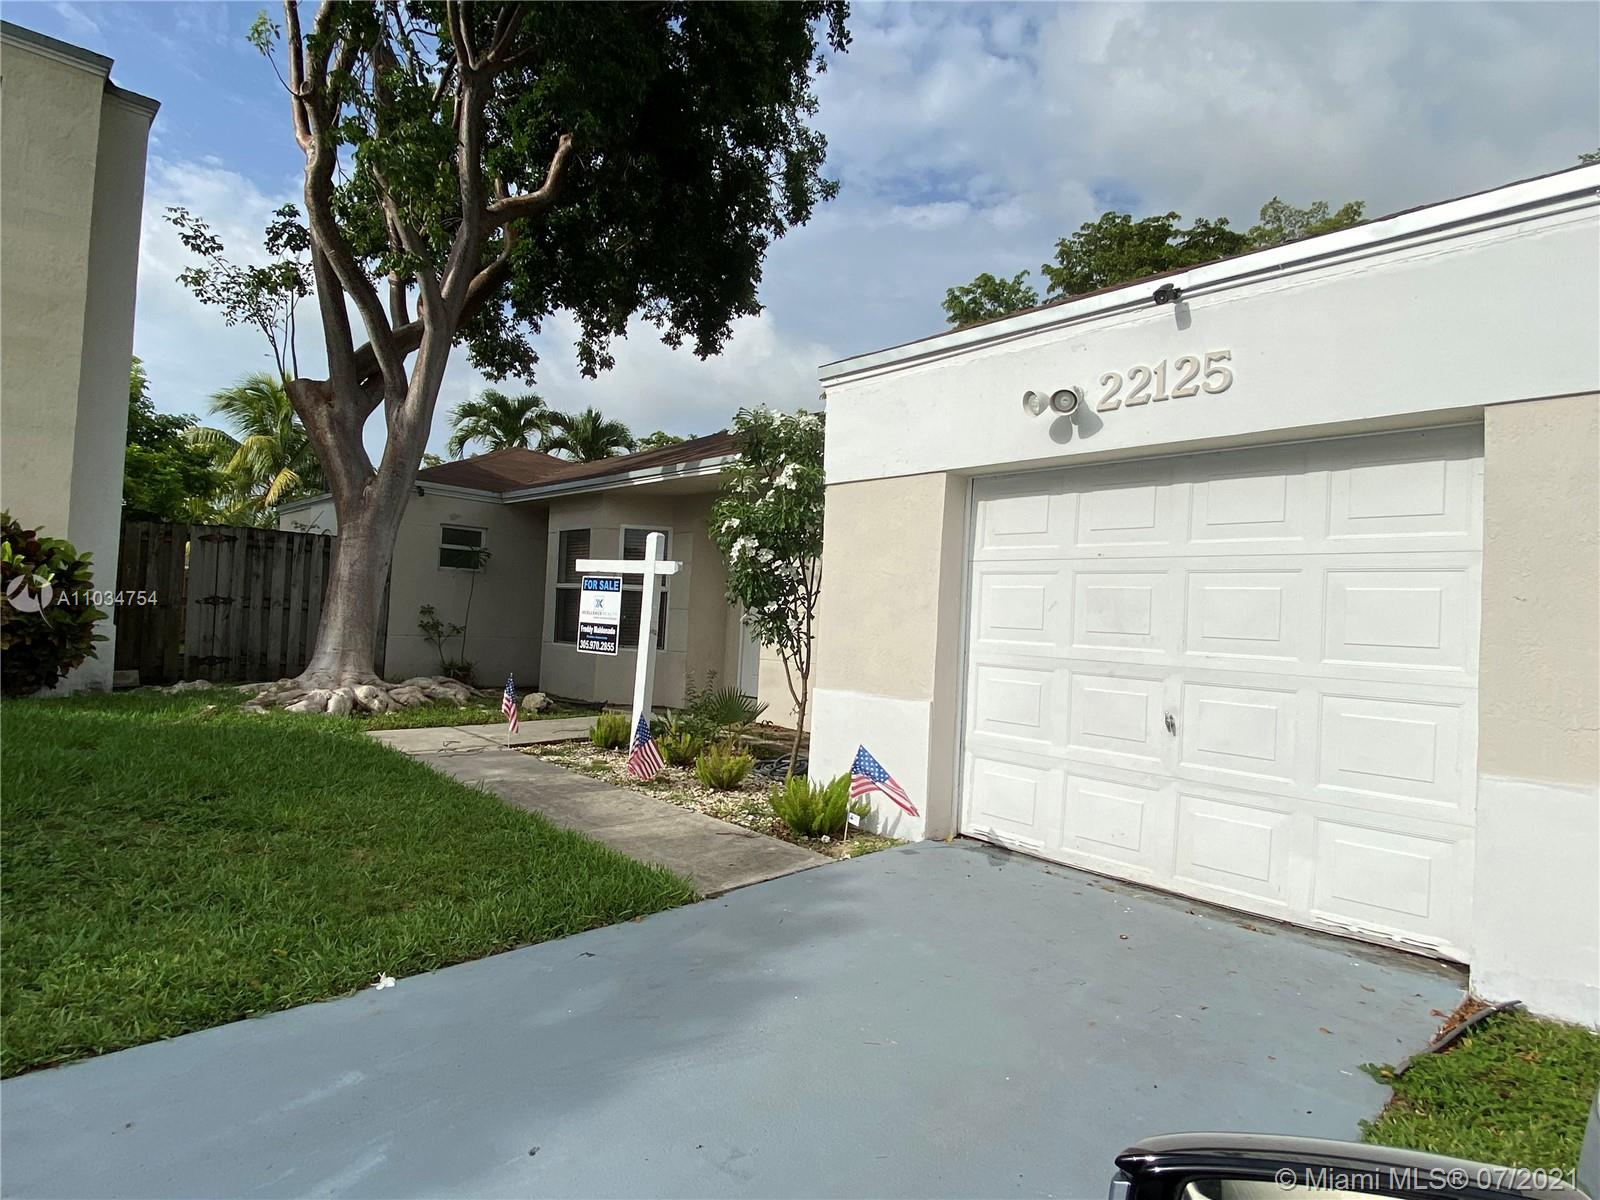 WONDERFUL 3 BEDROOM 2 BATH HOME IN CHARMING NEIGHBORHOOD OF LAKES BY THE BAY IN THE CITY OF CUTLER BAY. A SPACIOUS YARD  AND GREAT LOCATION IS DEFINETELY A RARE FIND.